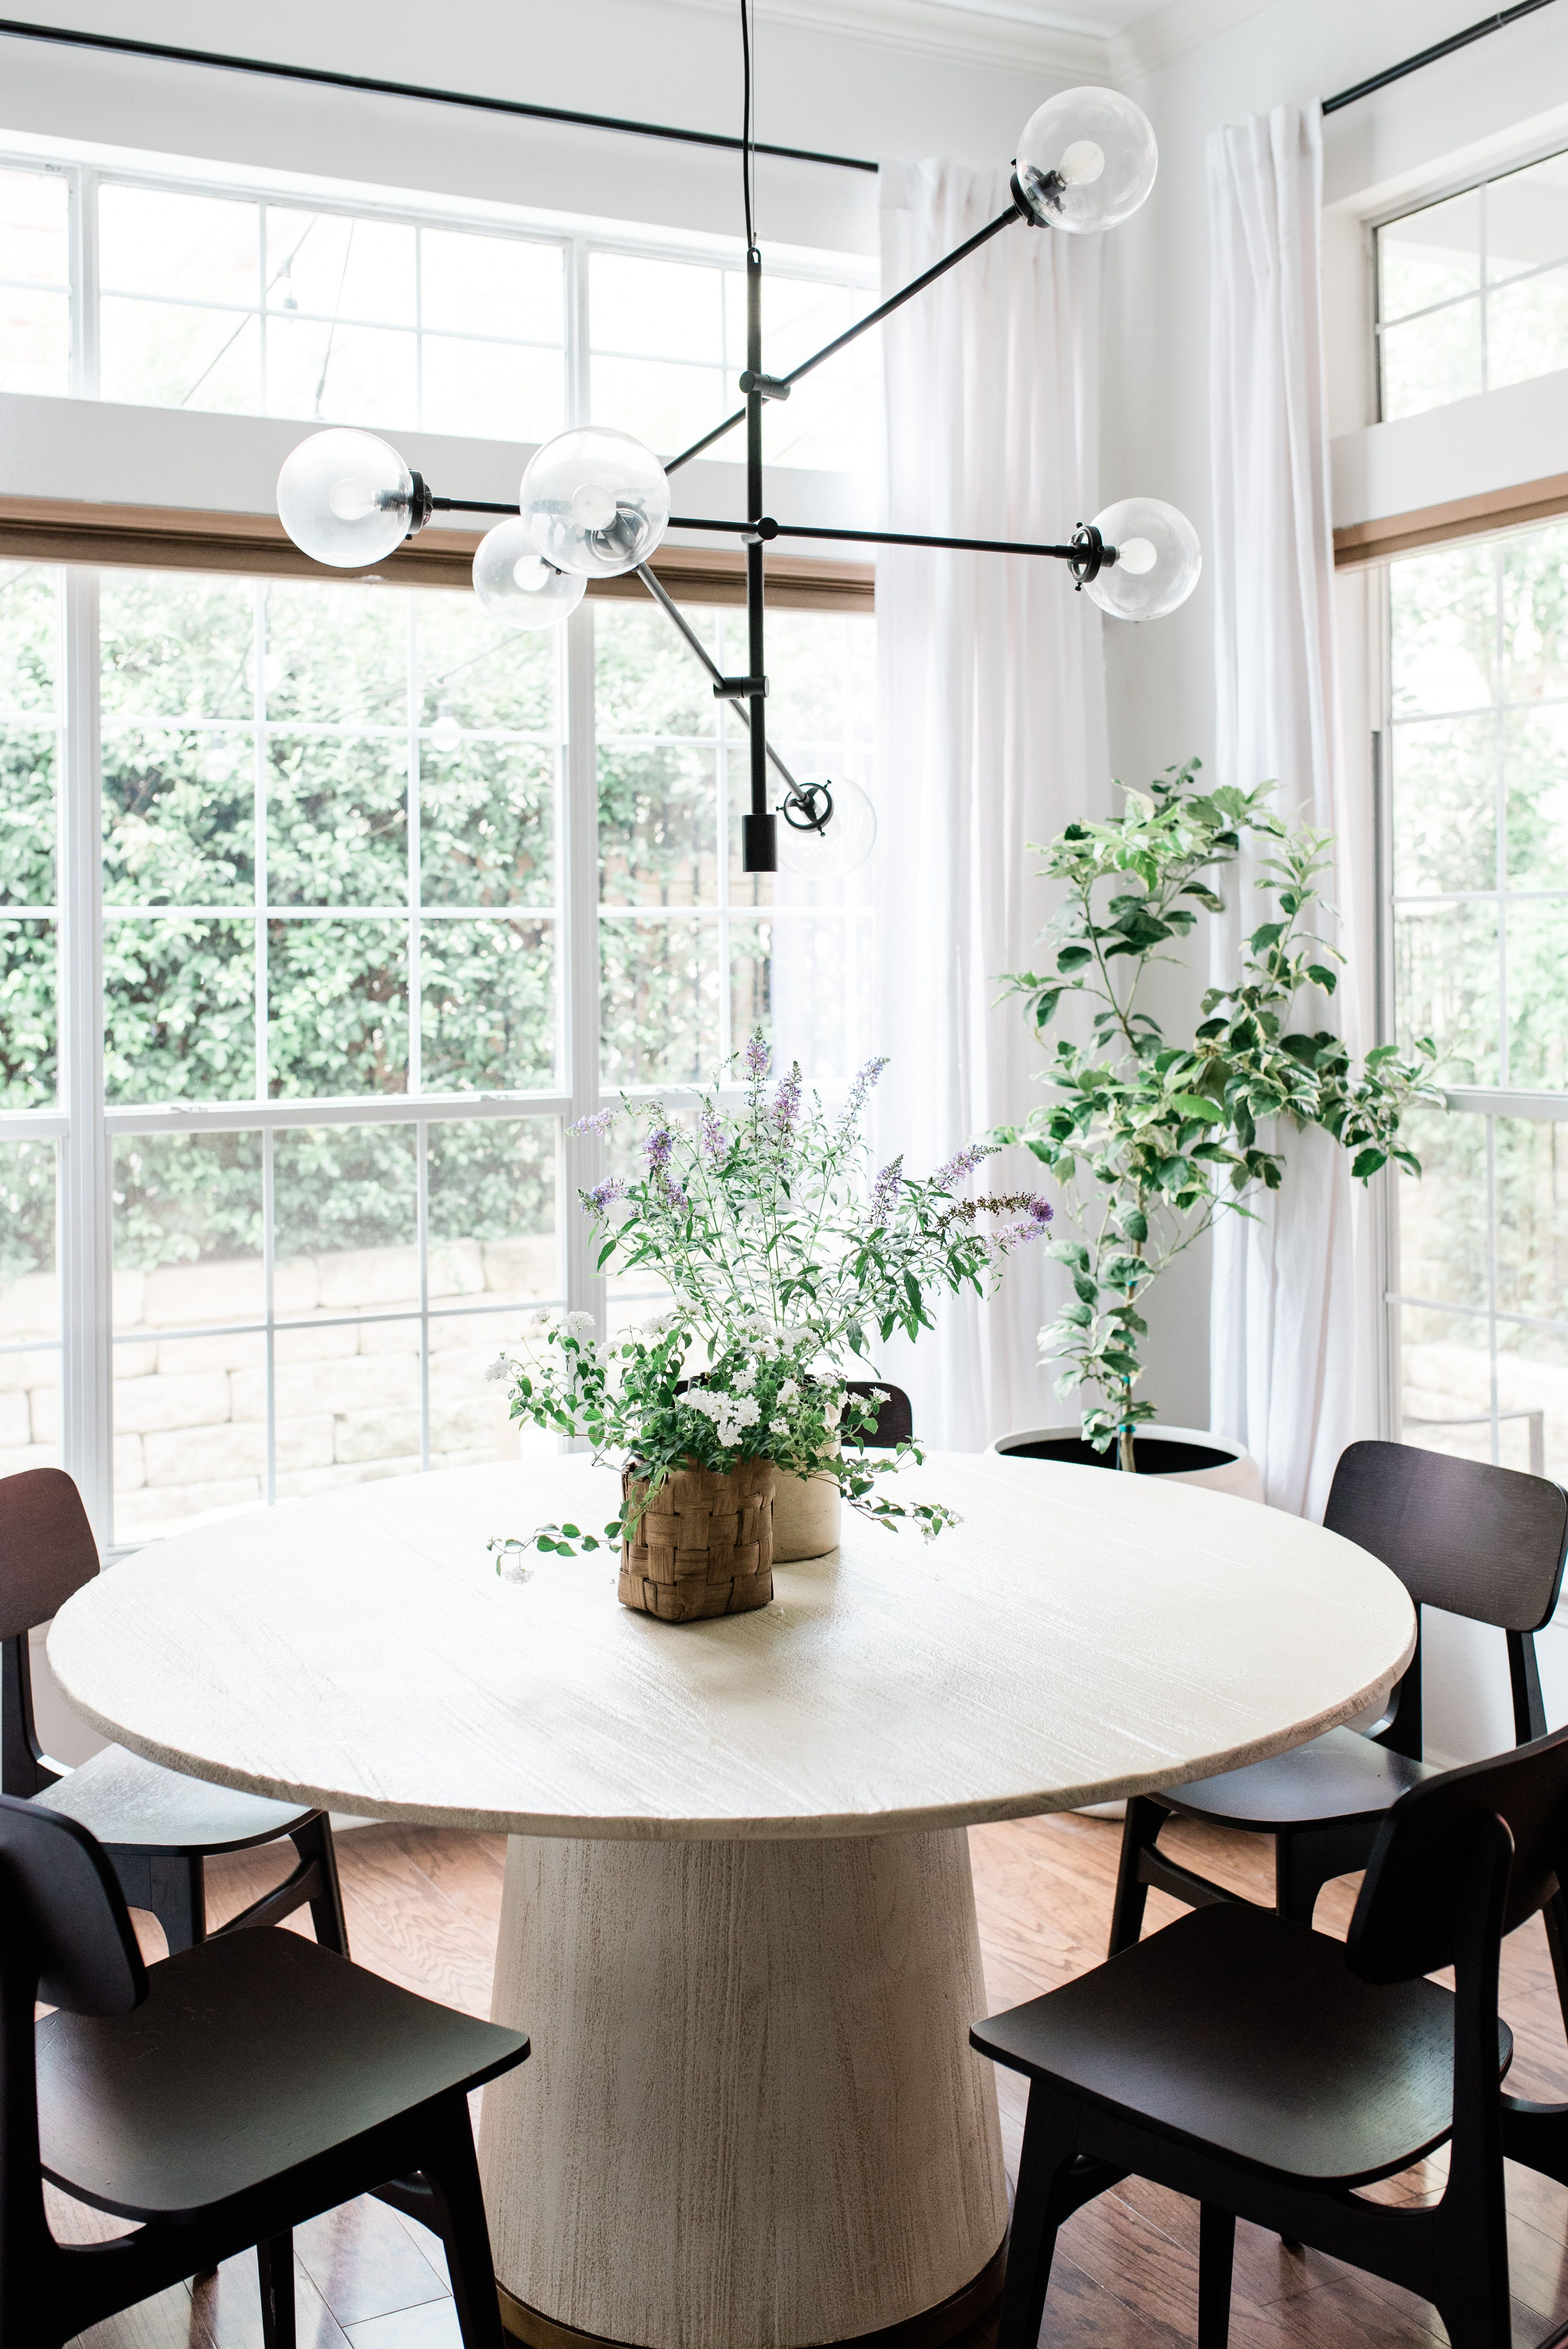 Dining Room Update The Identite Collective Round Dining Room Sets Round Dining Room Table Round Dining Room